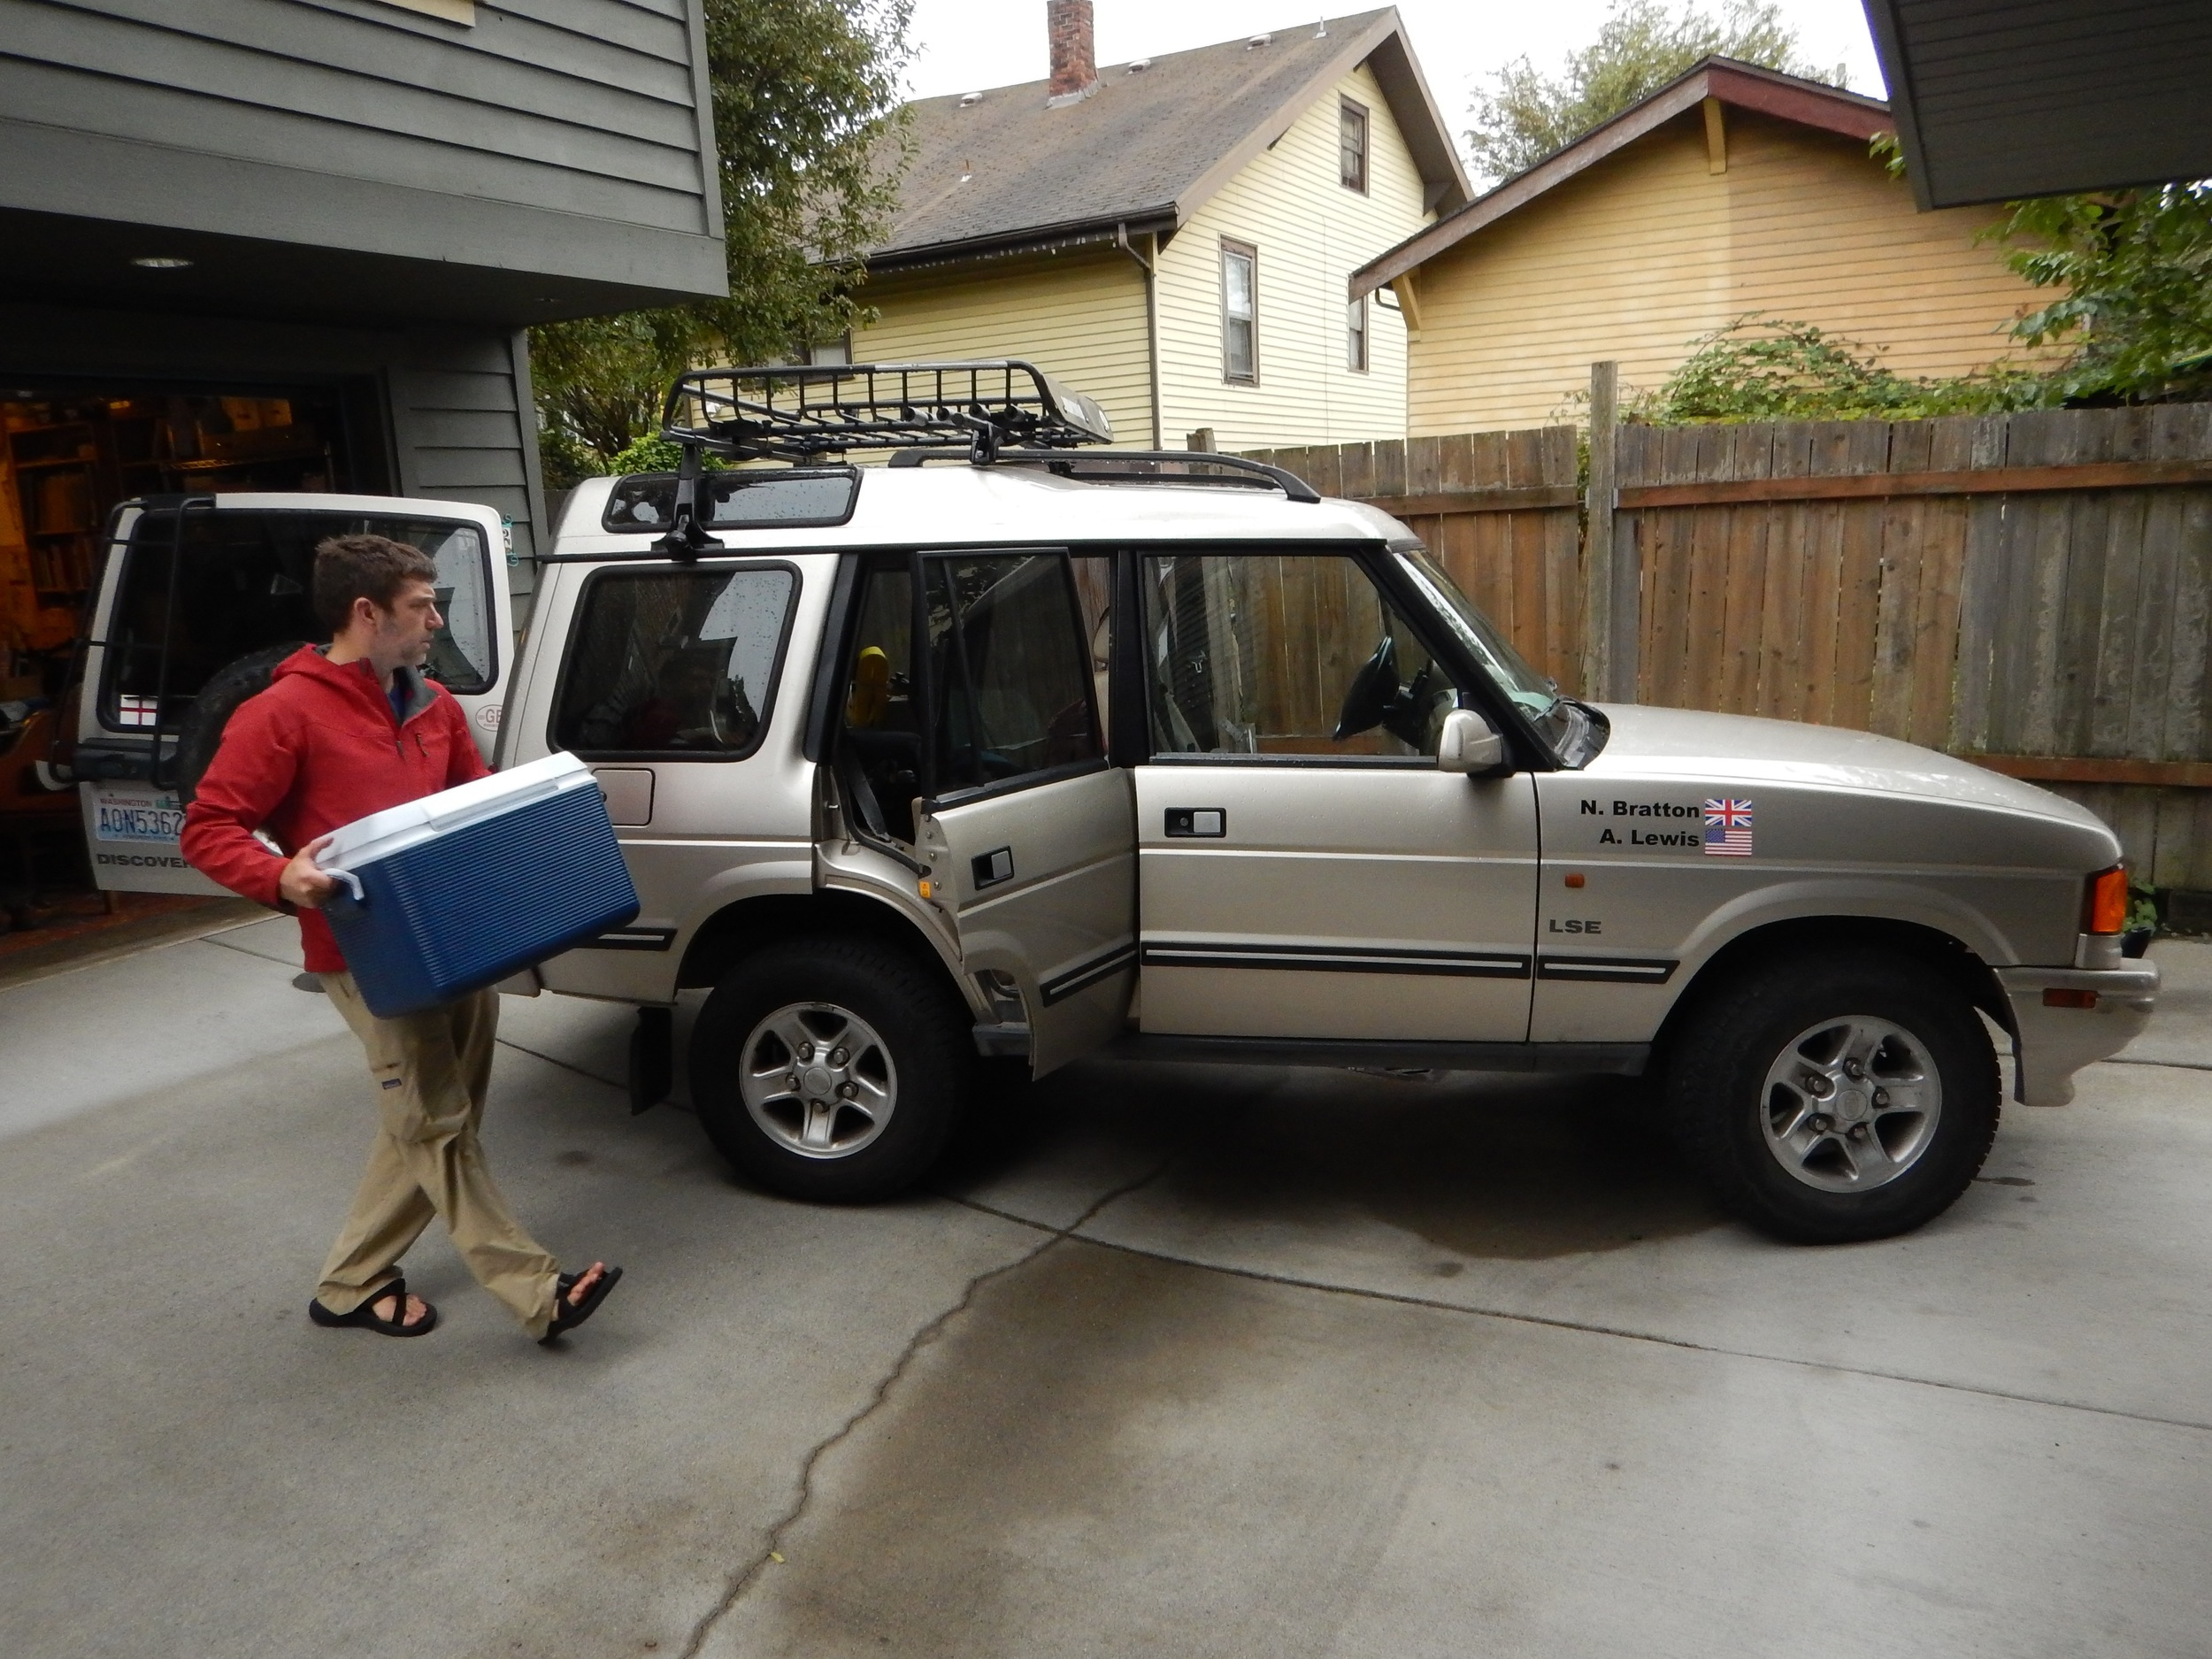 Andy loads the Disco. Unbelievably, even though this wasn't a Yeti cooler, it still had ice in it three days later.